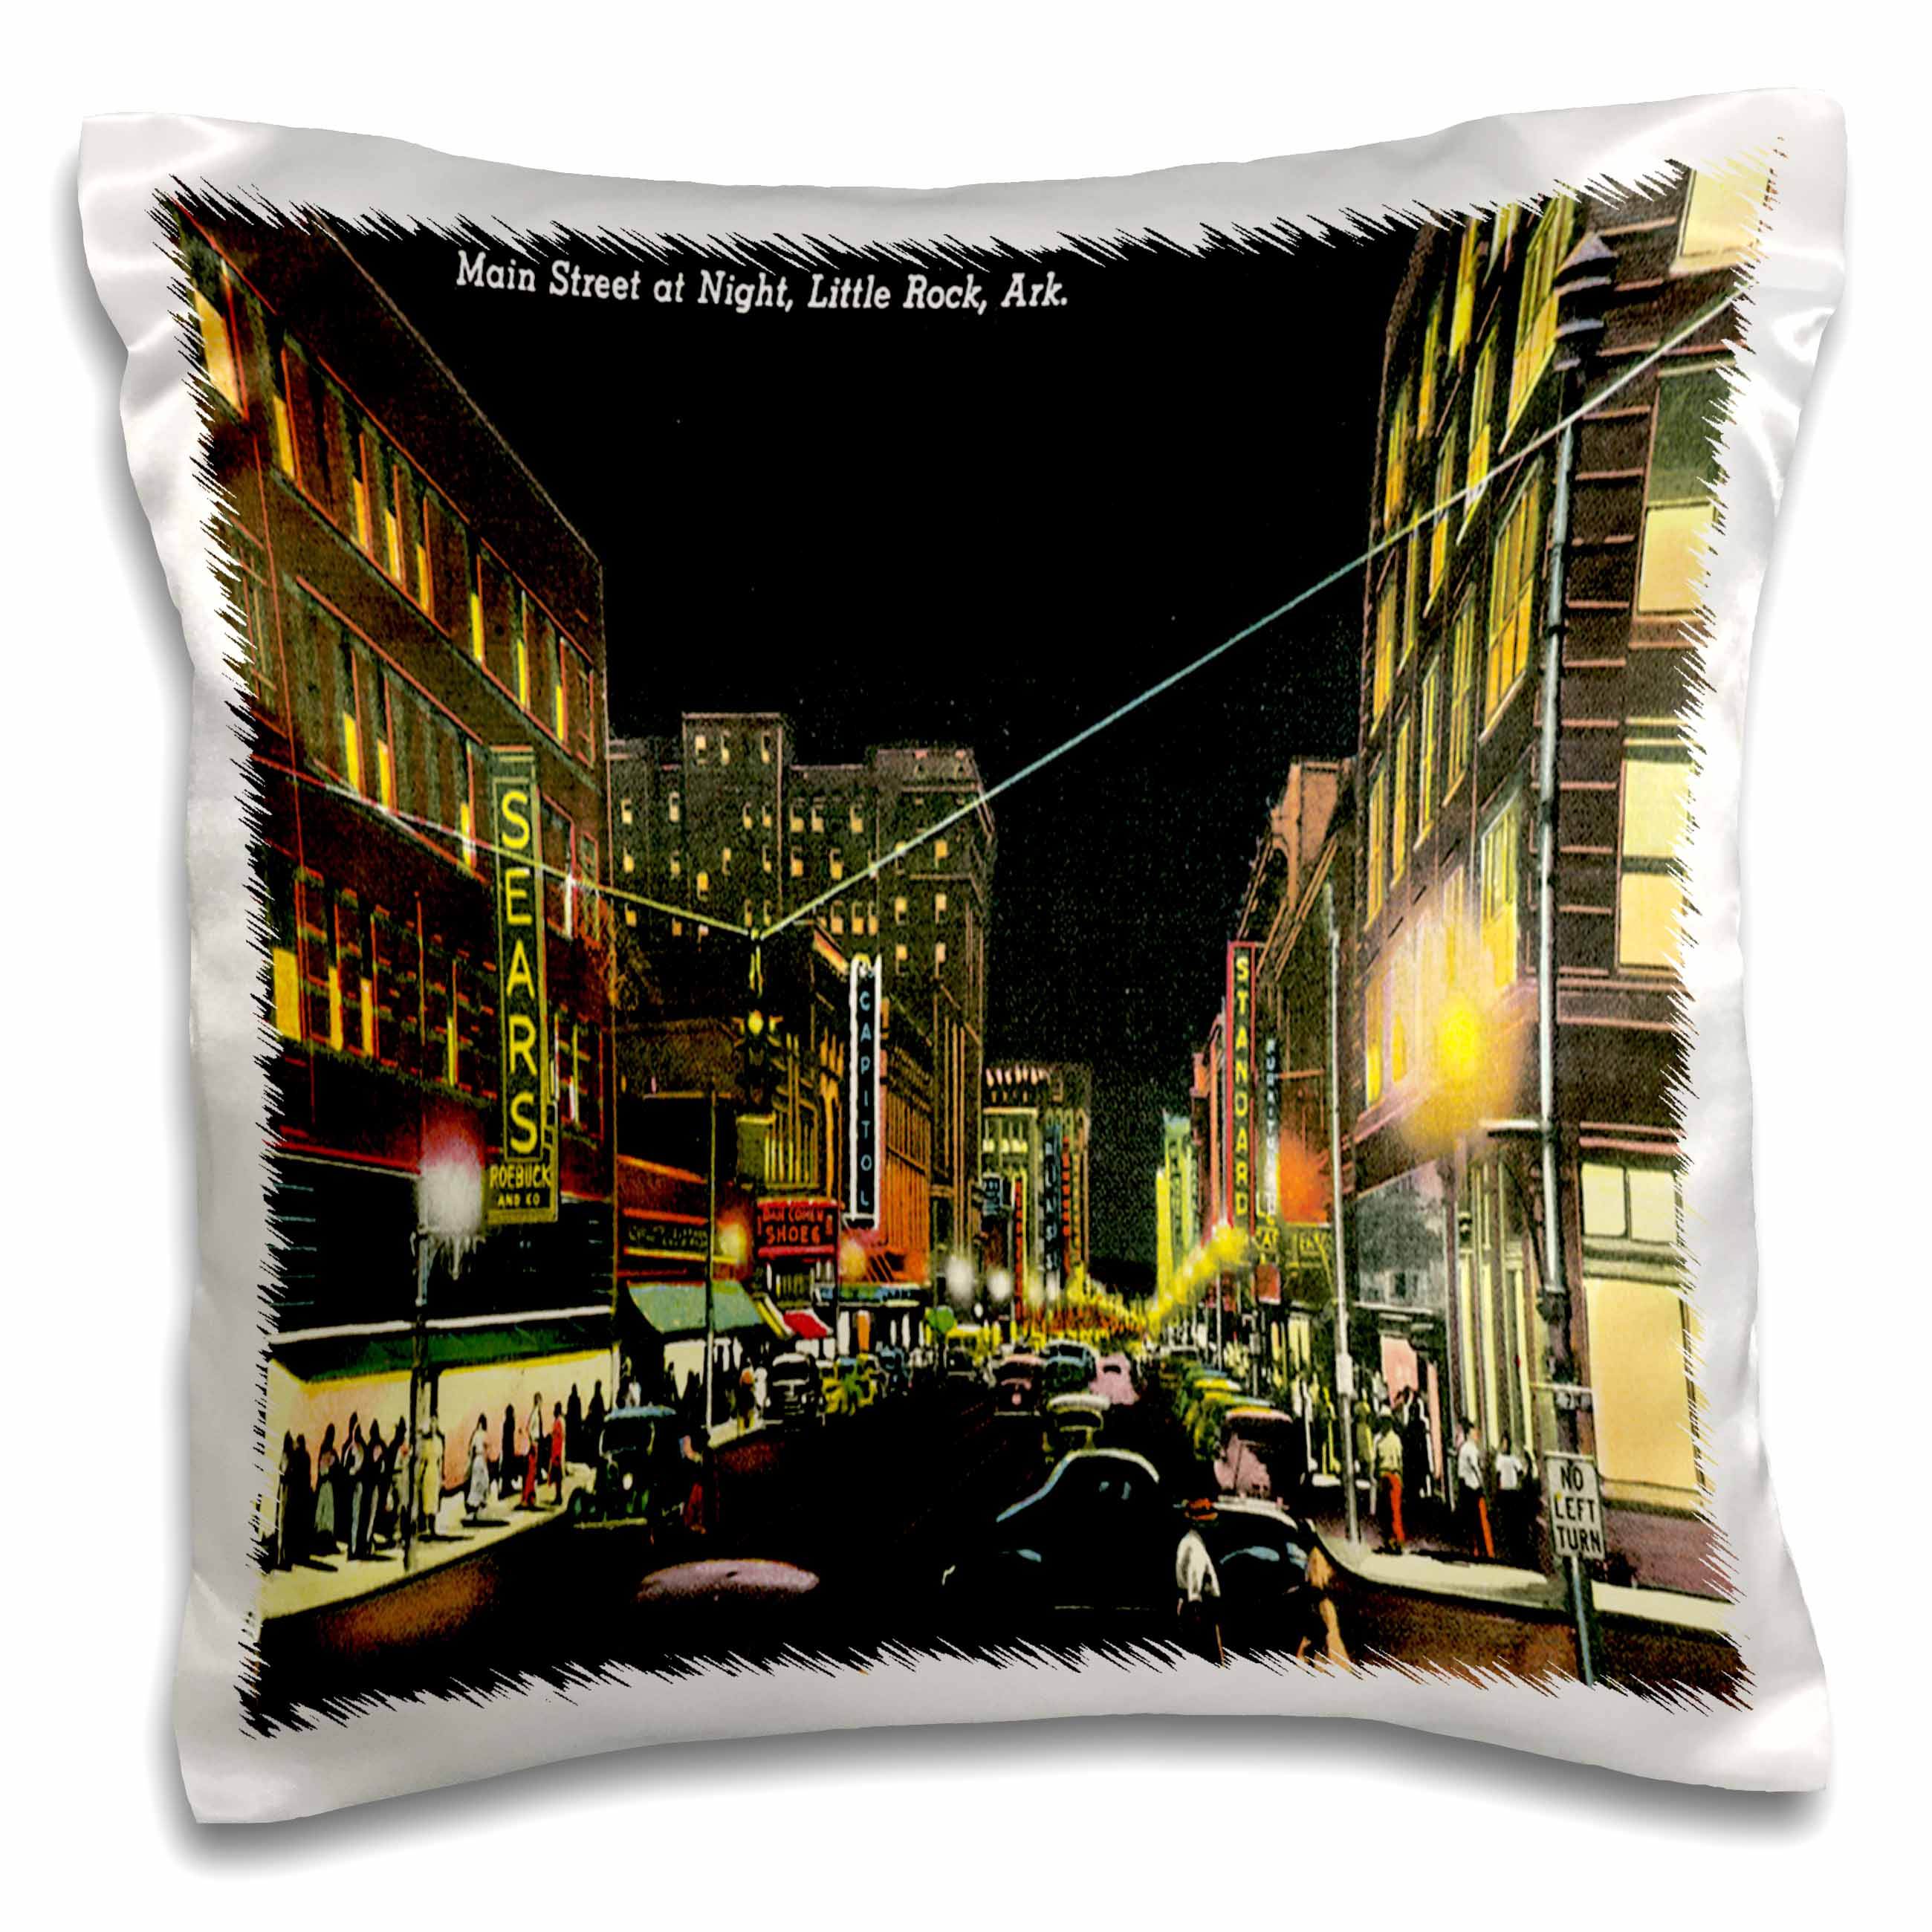 3dRose Main Street at Night, Little Rock, Arkansas Street Scene with City Lights - Pillow Case, 16 by 16-inch